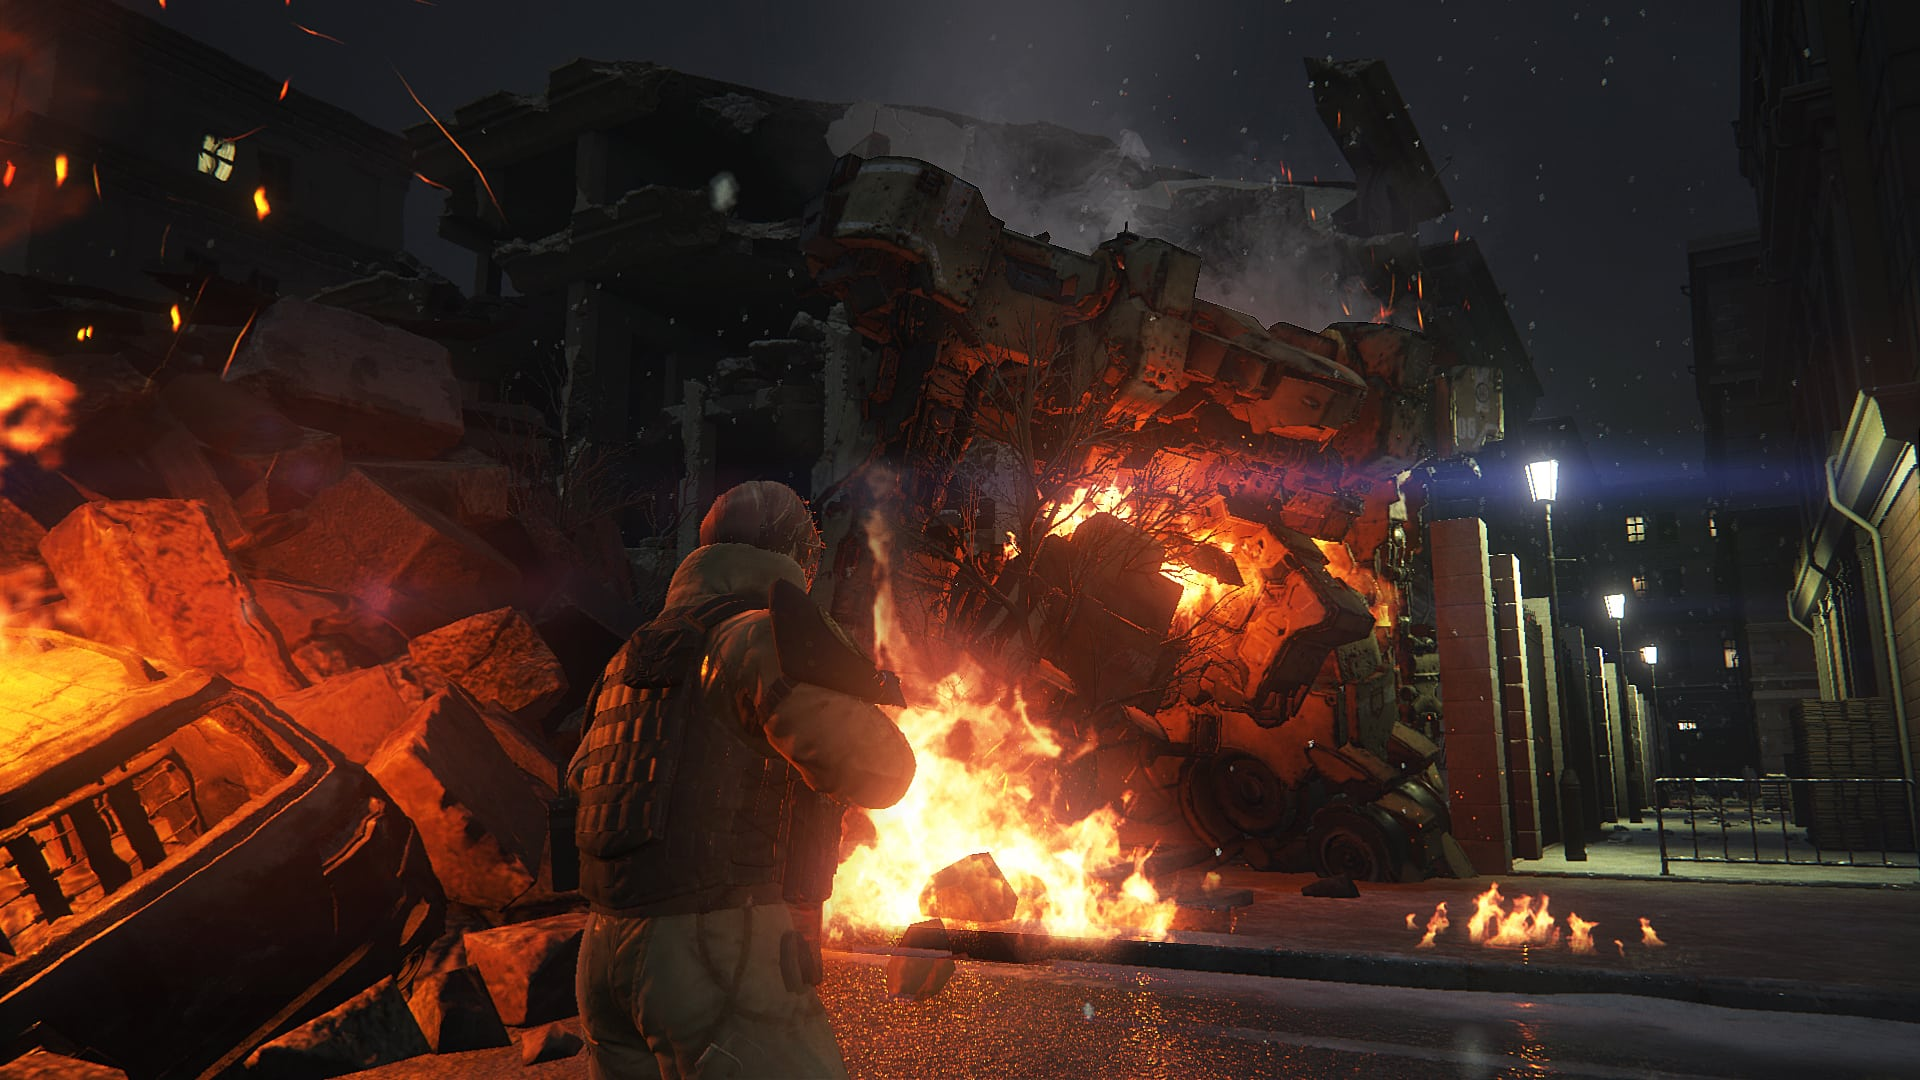 Left Alive Ilinx Square Enix Front Mission survival stealth spin-off offers hope and choice, unlike The Last of Us Part II Naughty Dog